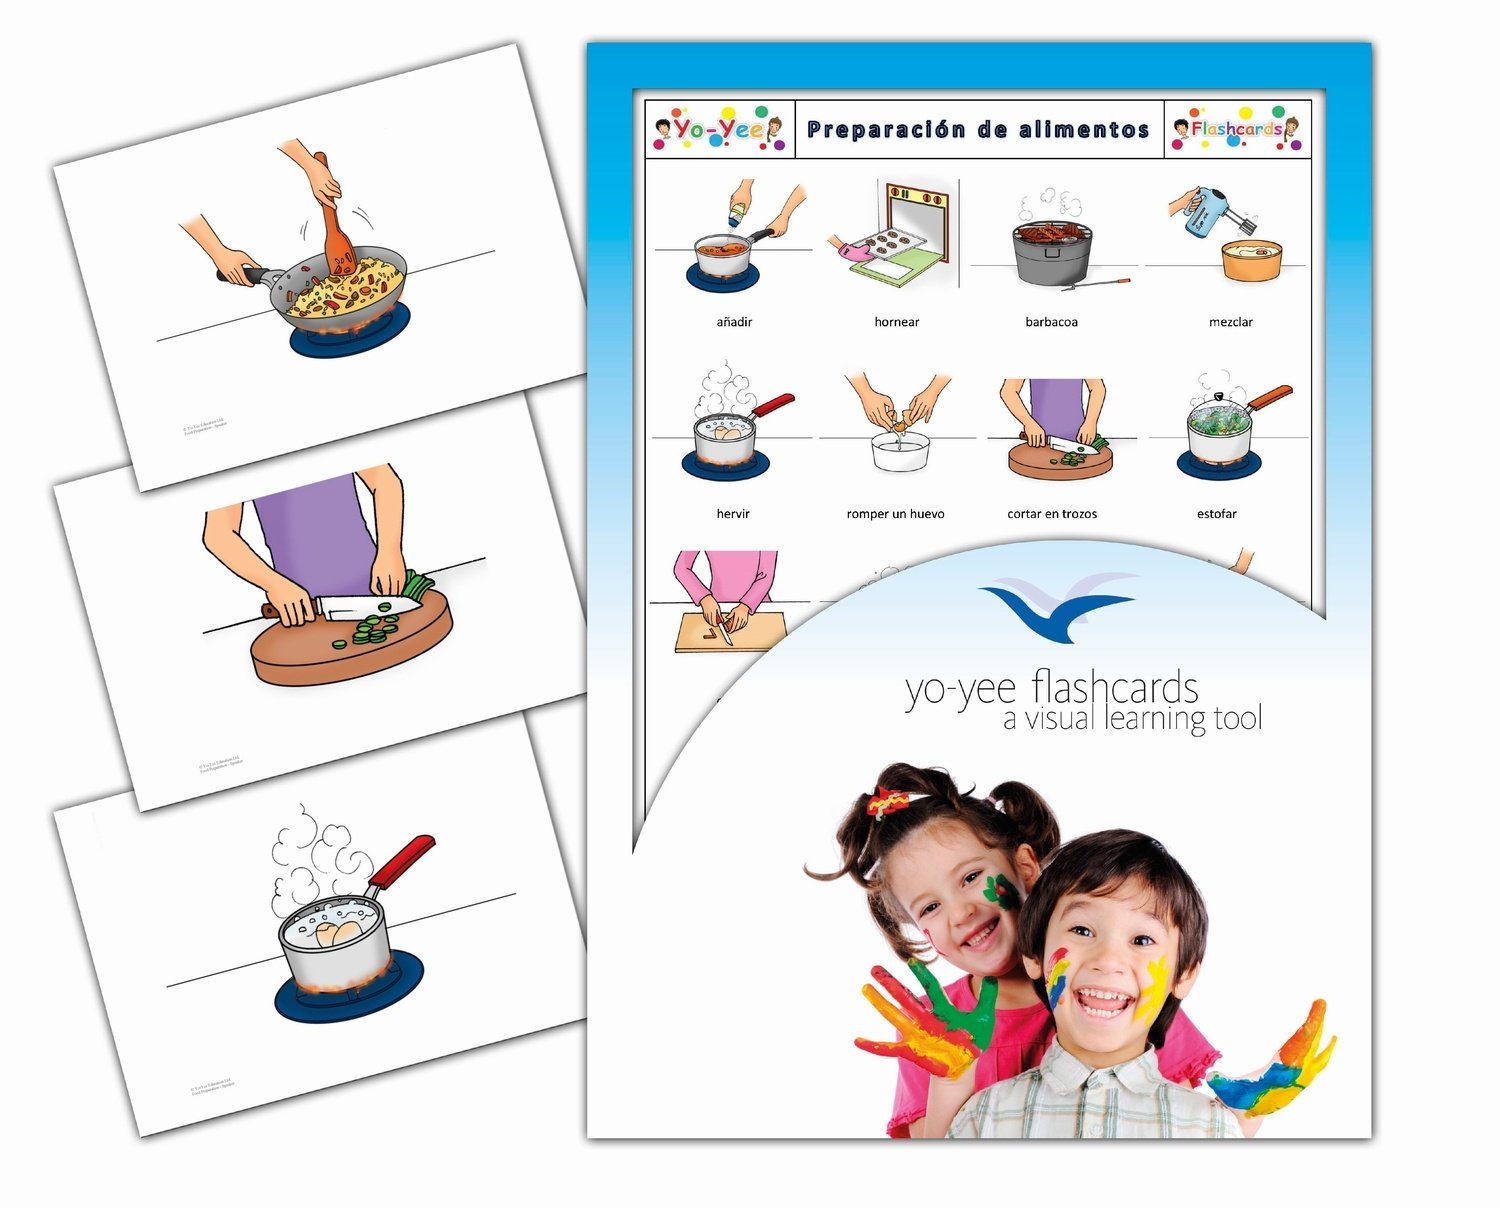 Amazon.com: Spanish Speaker Flash Cards Kit for Teachers - Palabras e imagenes - Español para niños - Perfect for kids, children, adults, autism or speech ...